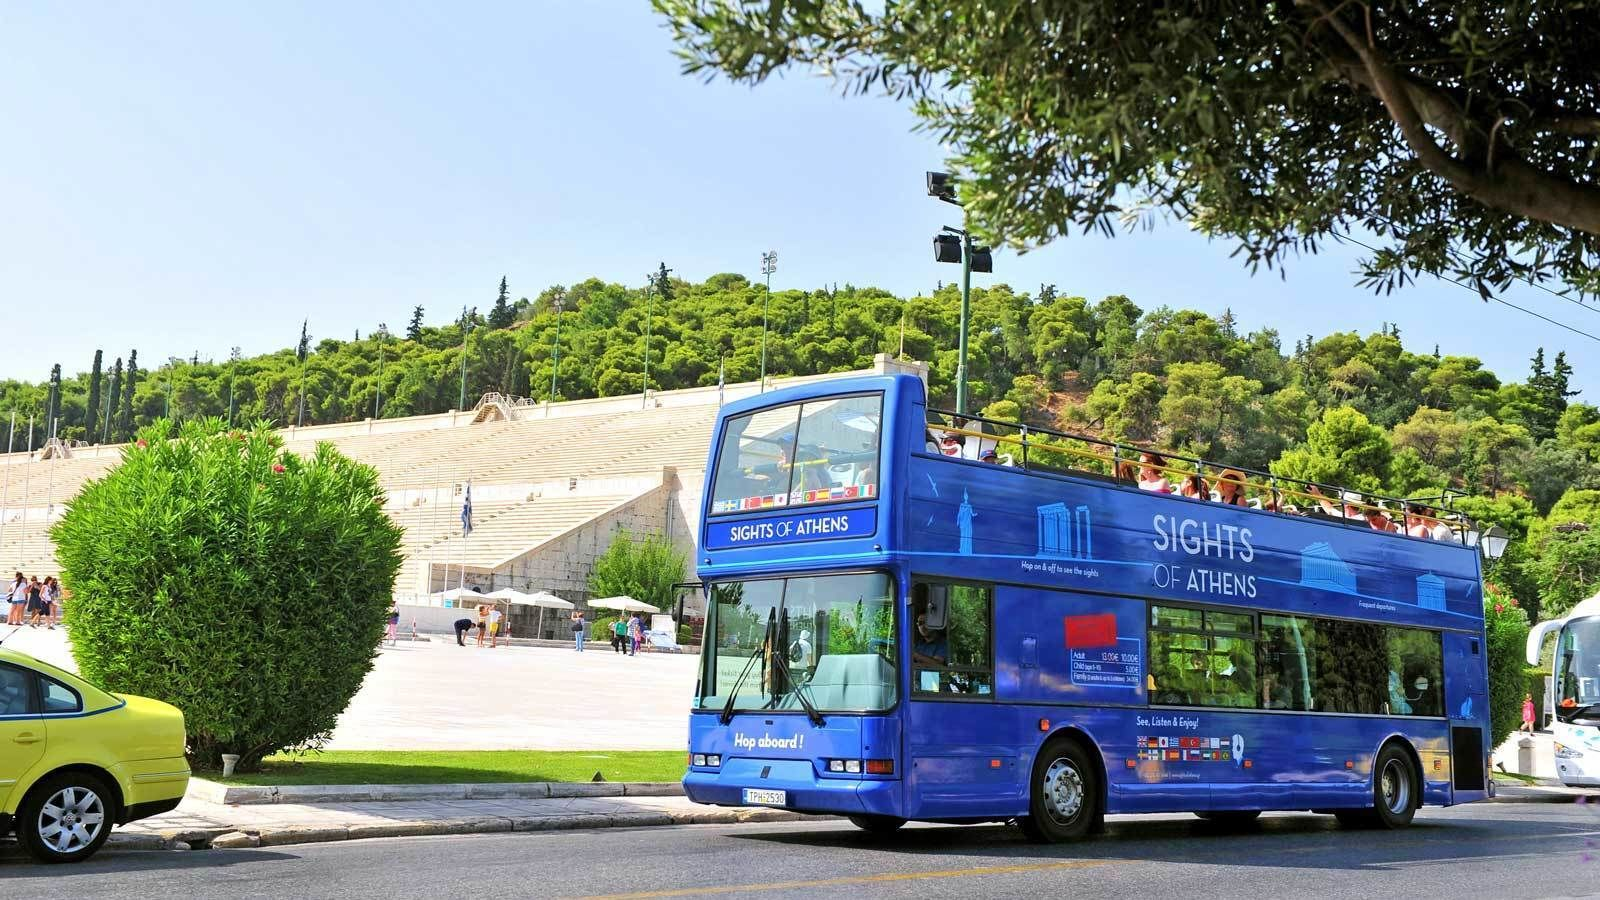 aboard a blue double deck bus in Athens